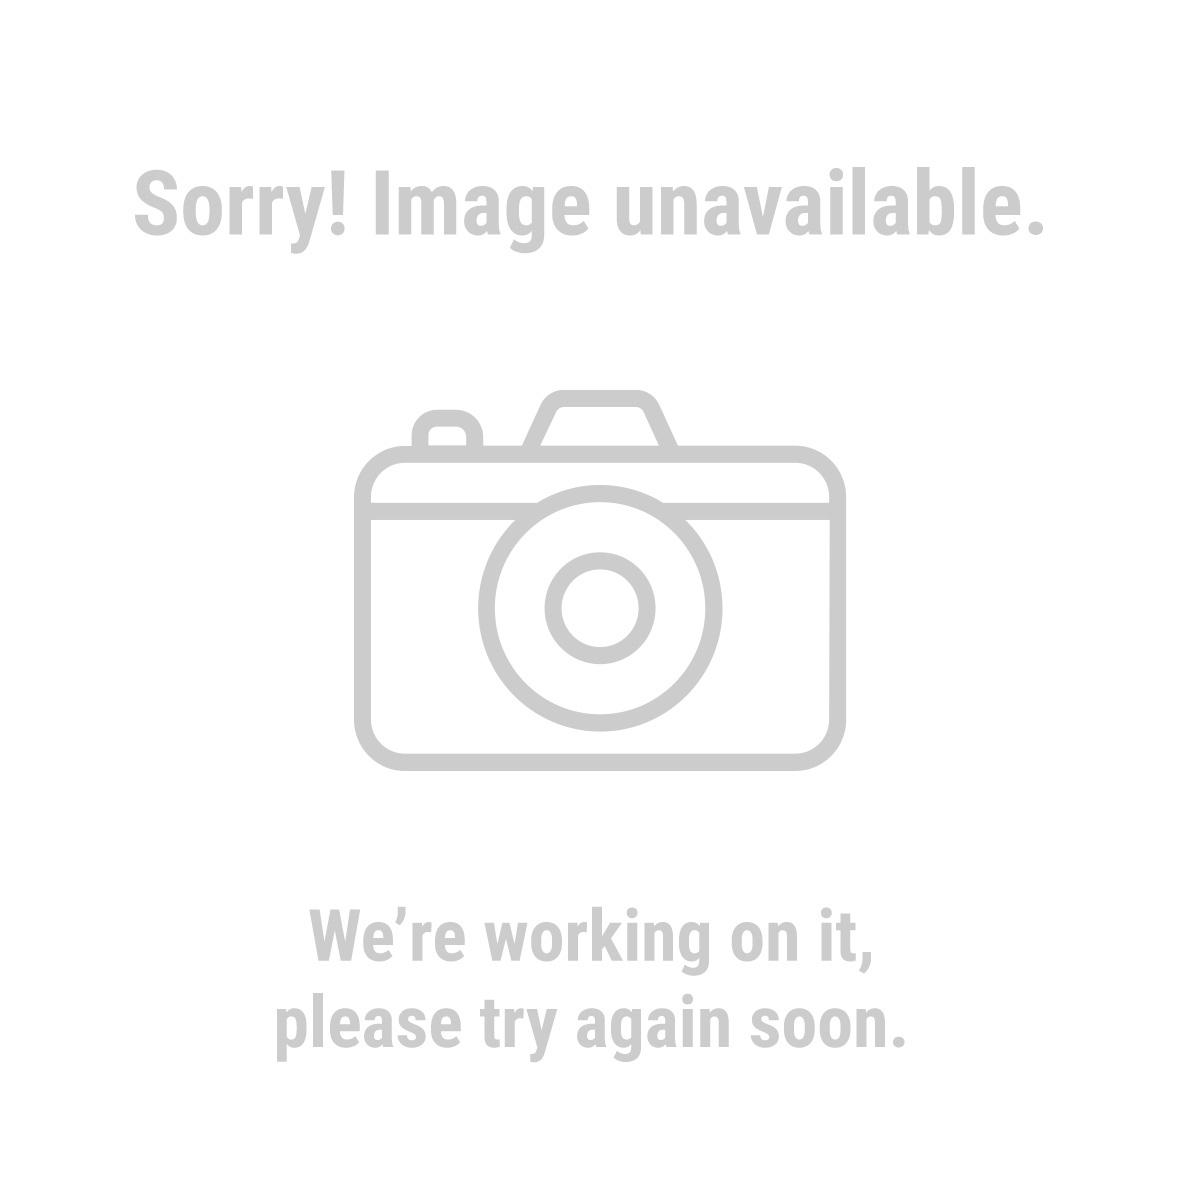 TailGator 63024 900 Peak/700 Running Watts, 2 HP  (63cc) 2 Cycle Gas Generator EPA/CARB